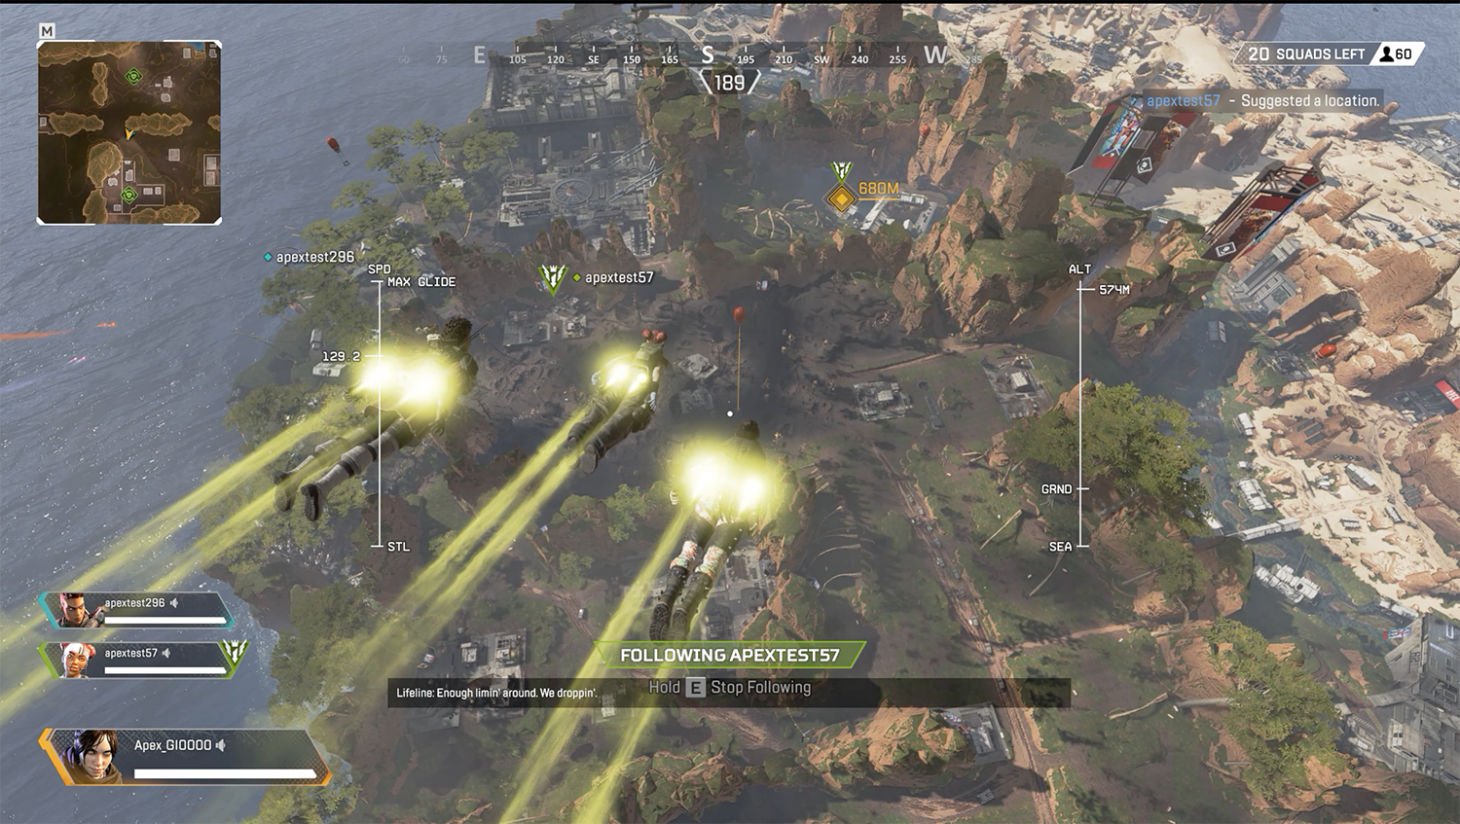 Apex Legends Racks Up 1 Million Players In 8 Hours Outlines Content